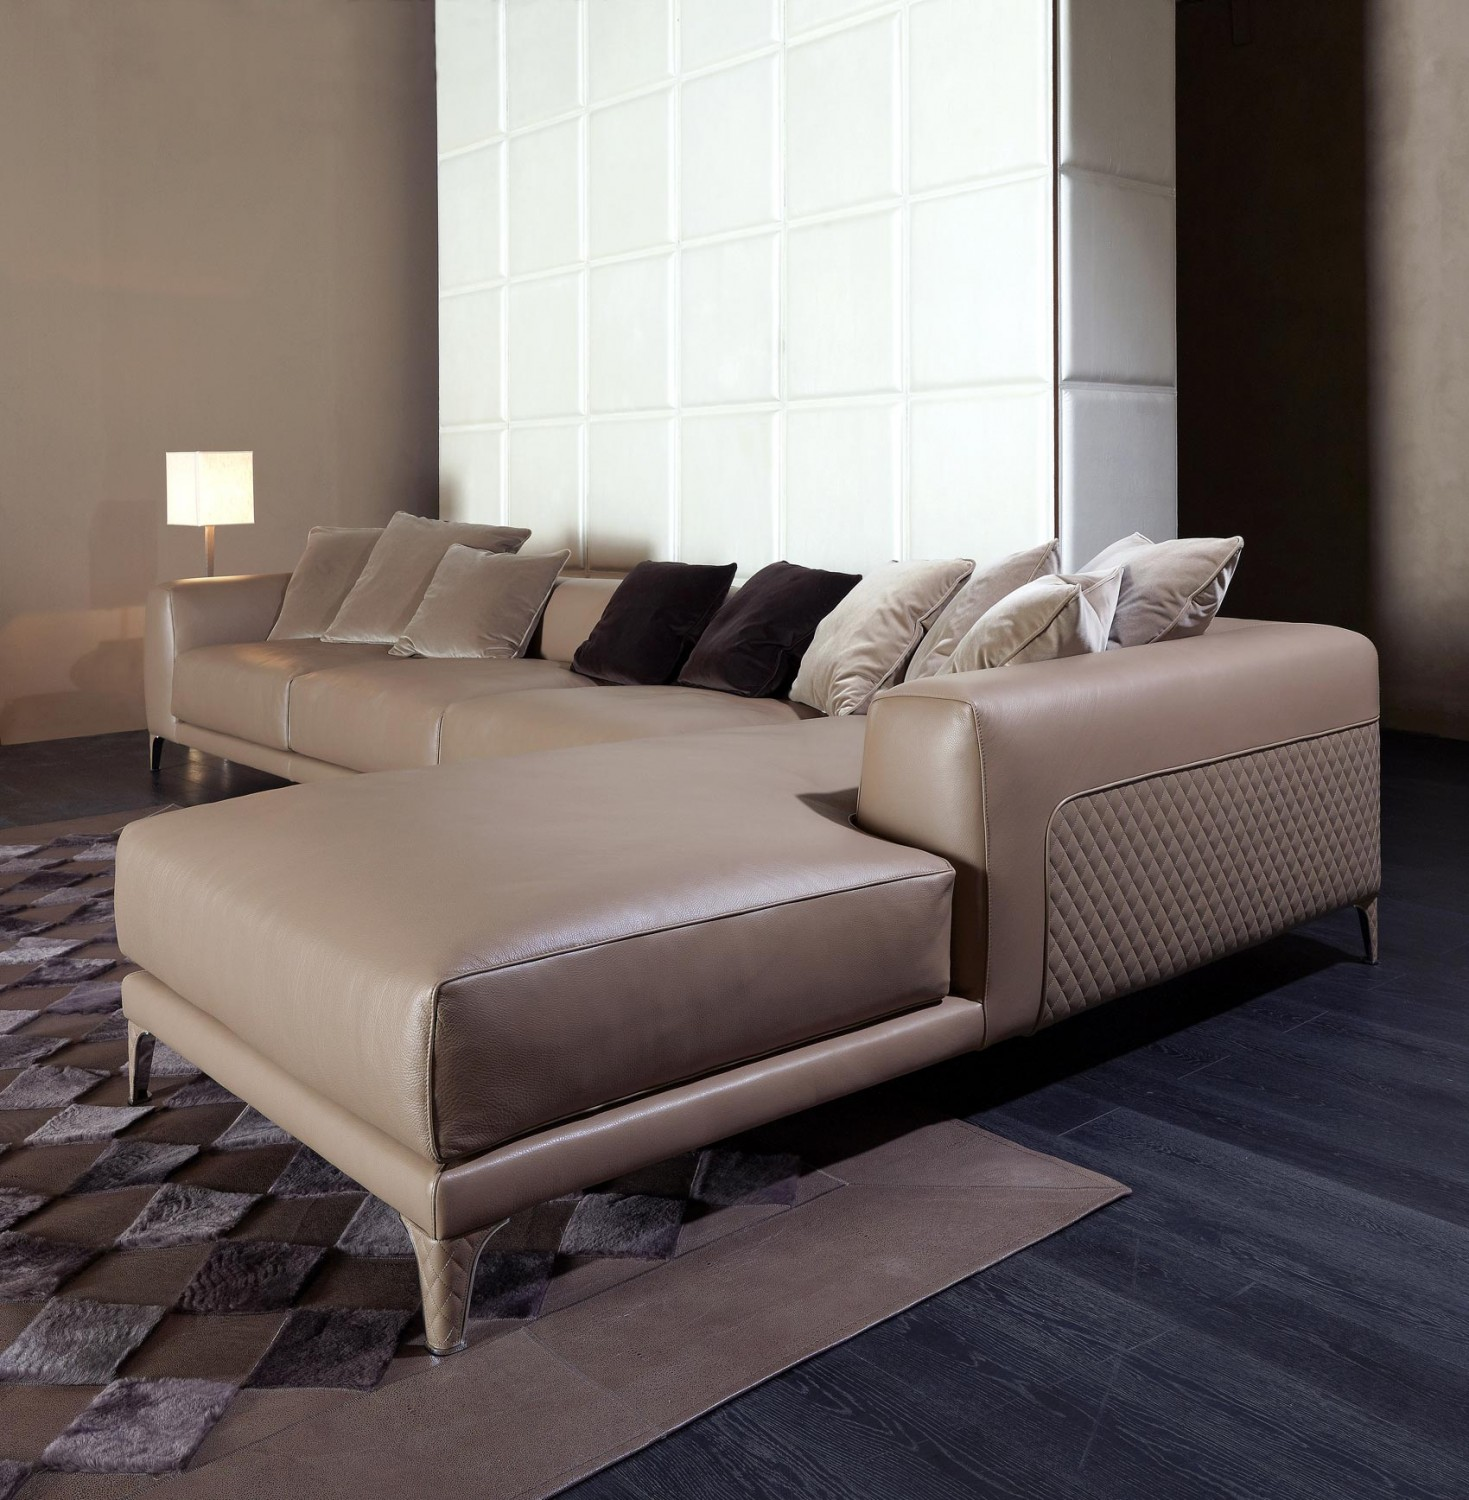 IL Decor Furniture Leon Sofa Sectional Rugiano Italy